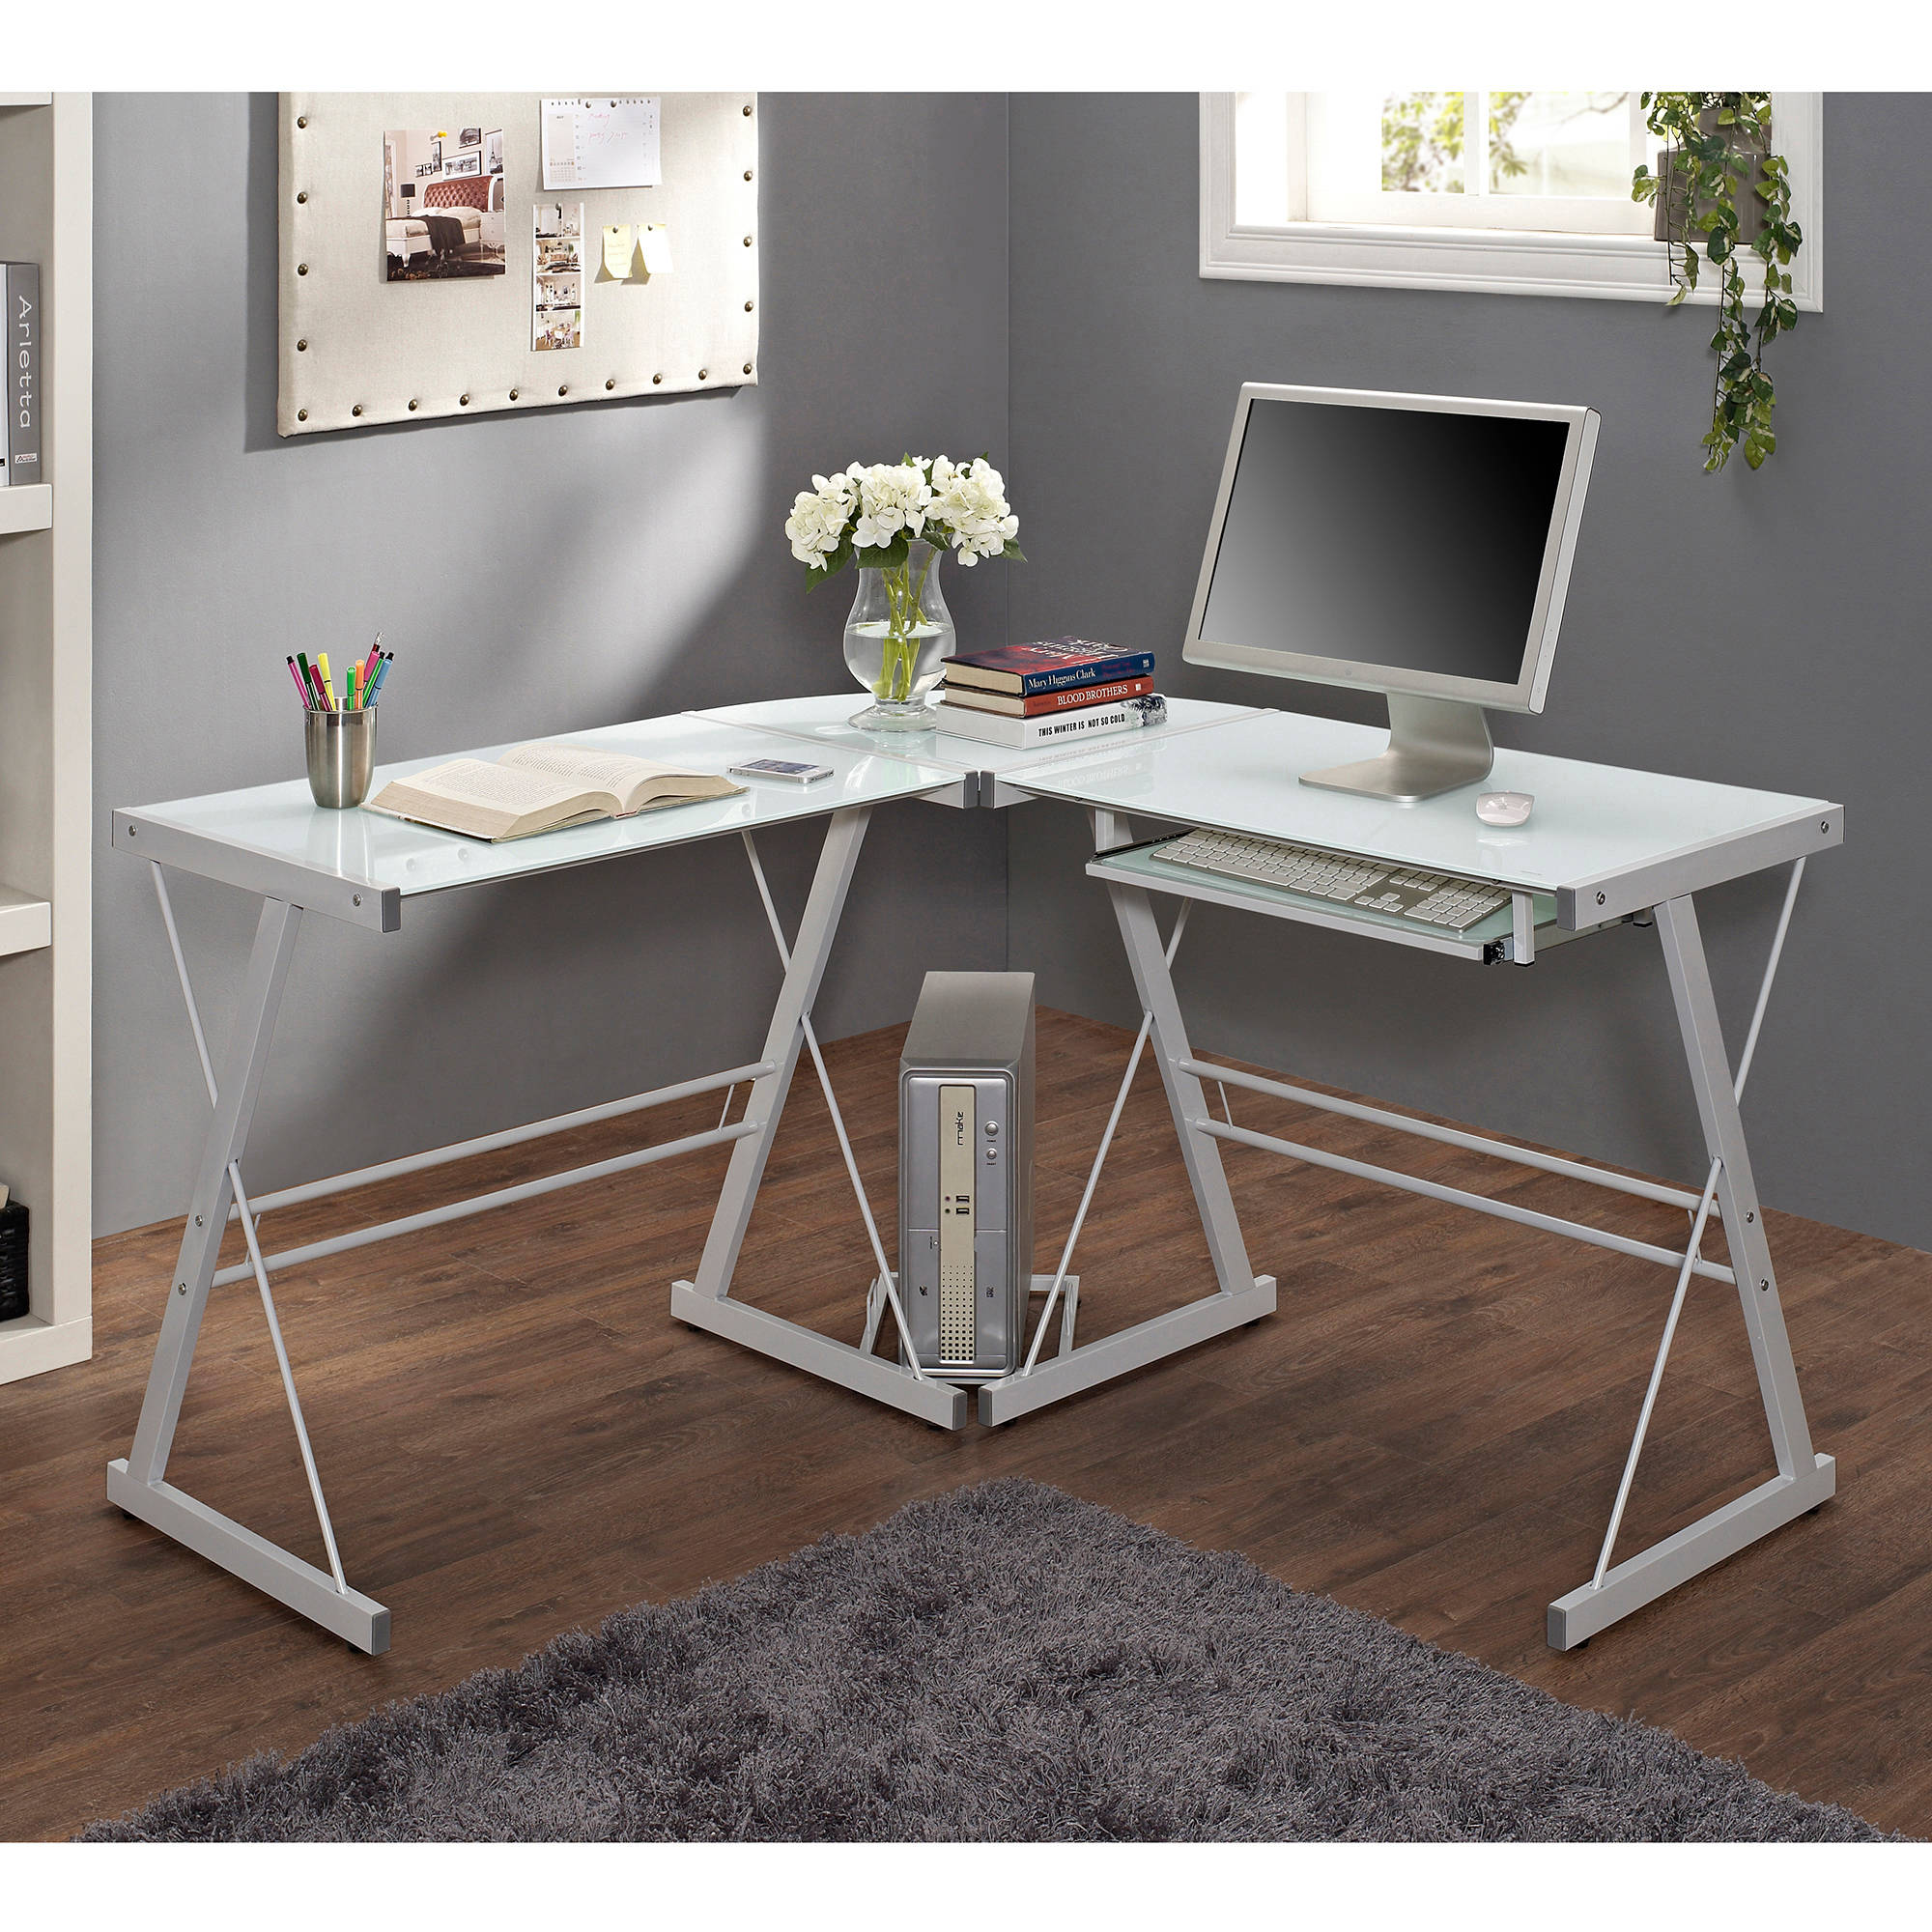 Costway Corner Computer Desk Laptop Writing Table Wood Workstation Home Office Furniture Com